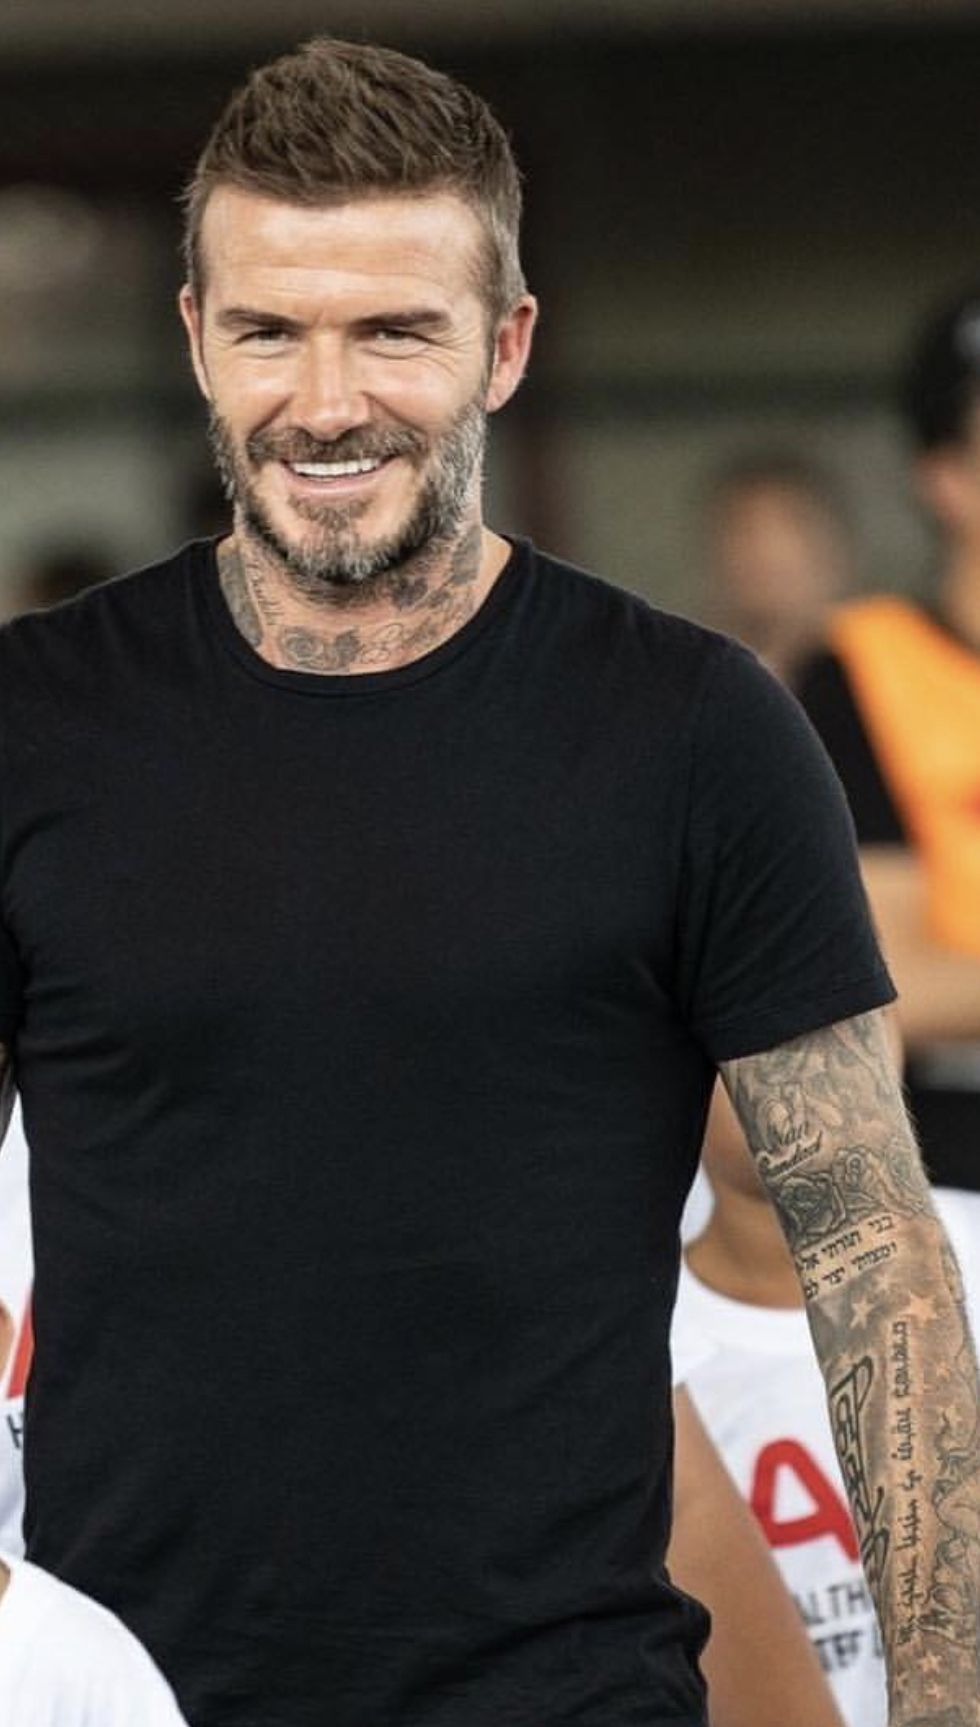 David Beckham Tattoos 2019